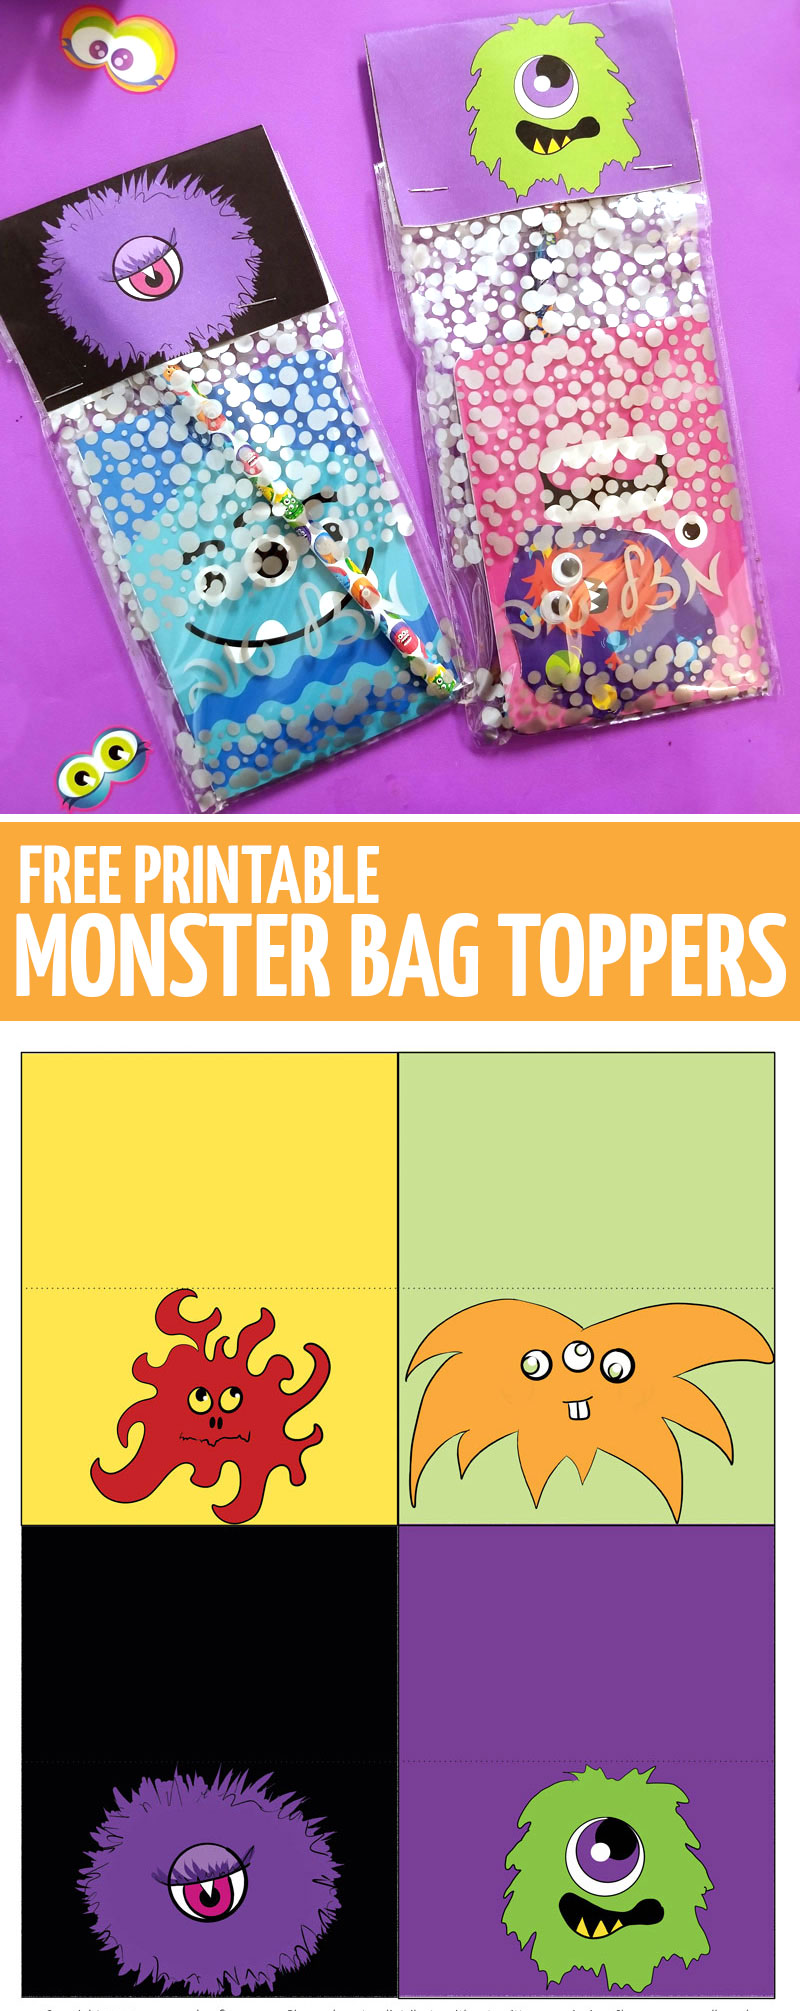 Throwing a monster theme birthday party? Make some monster party favors using these free printable bag toppers!